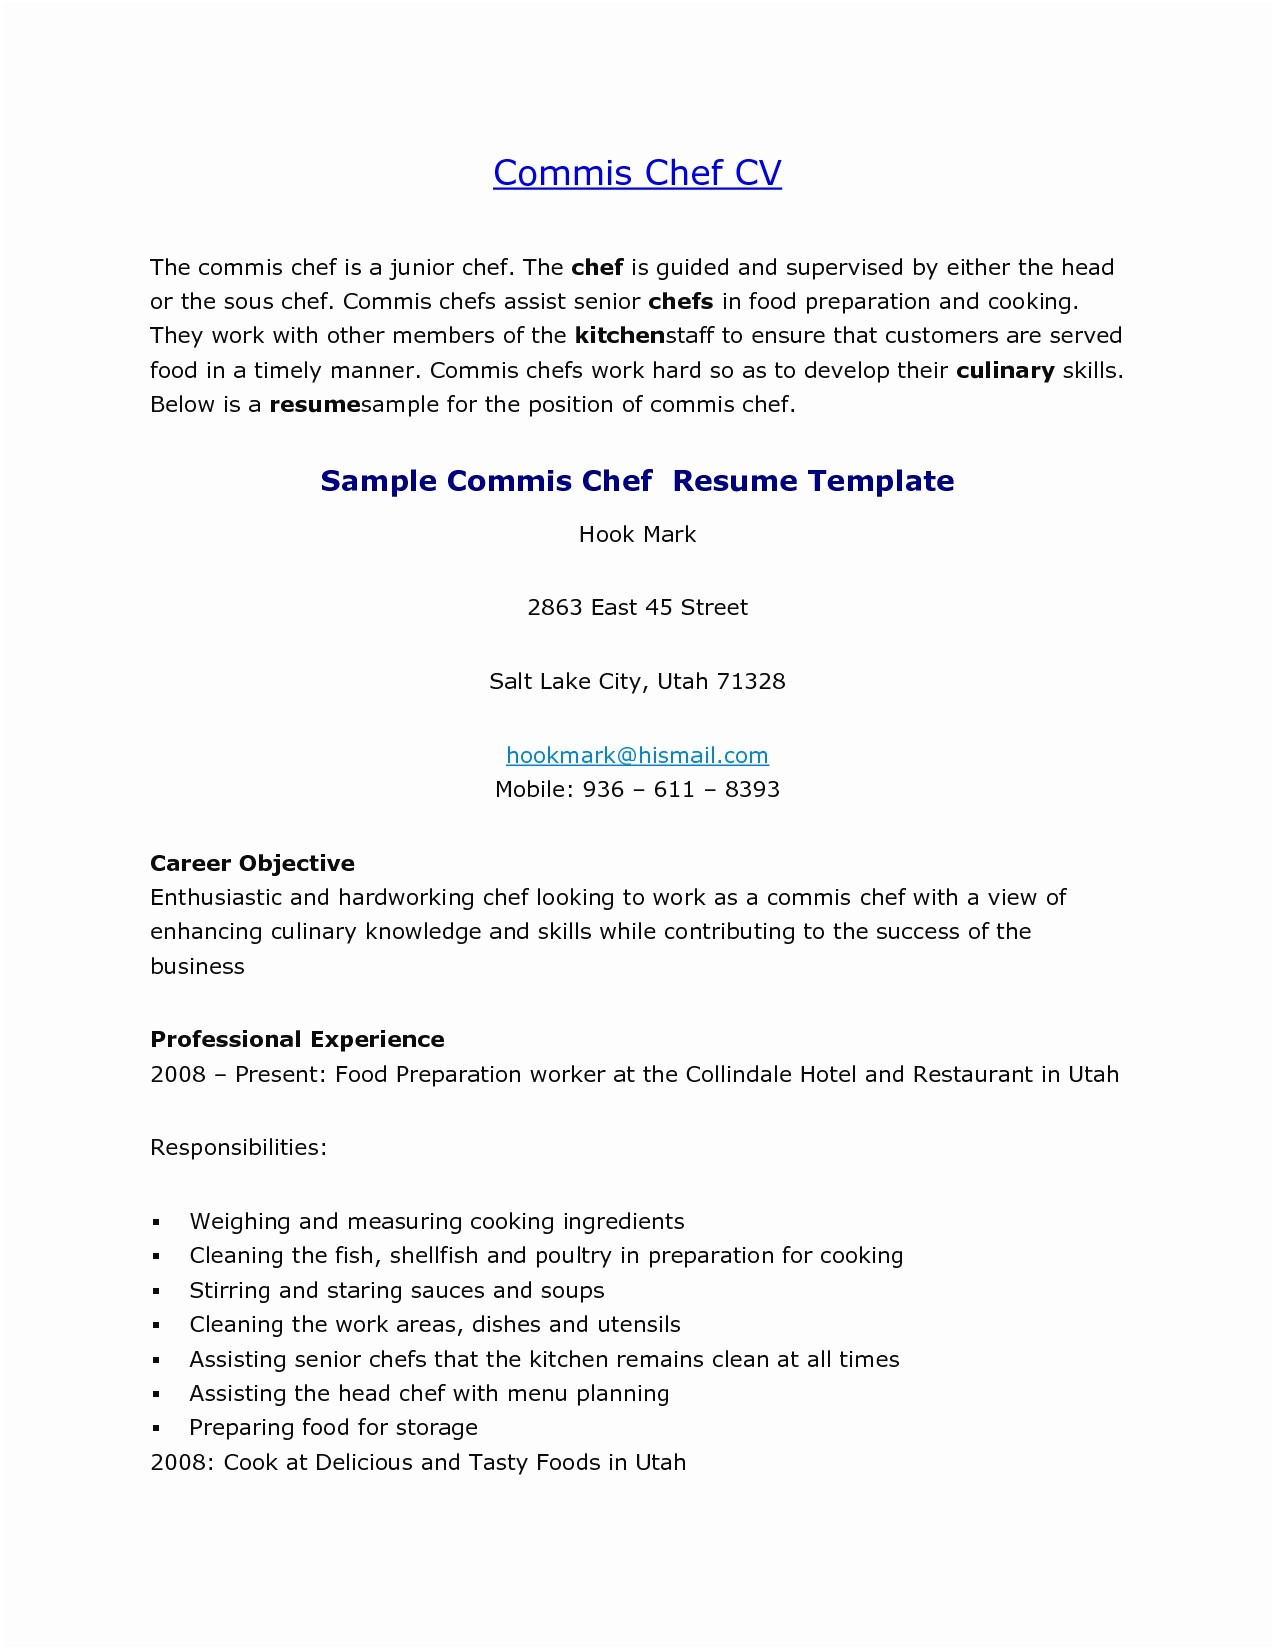 Resume Template Chef - Sample Chef Resume